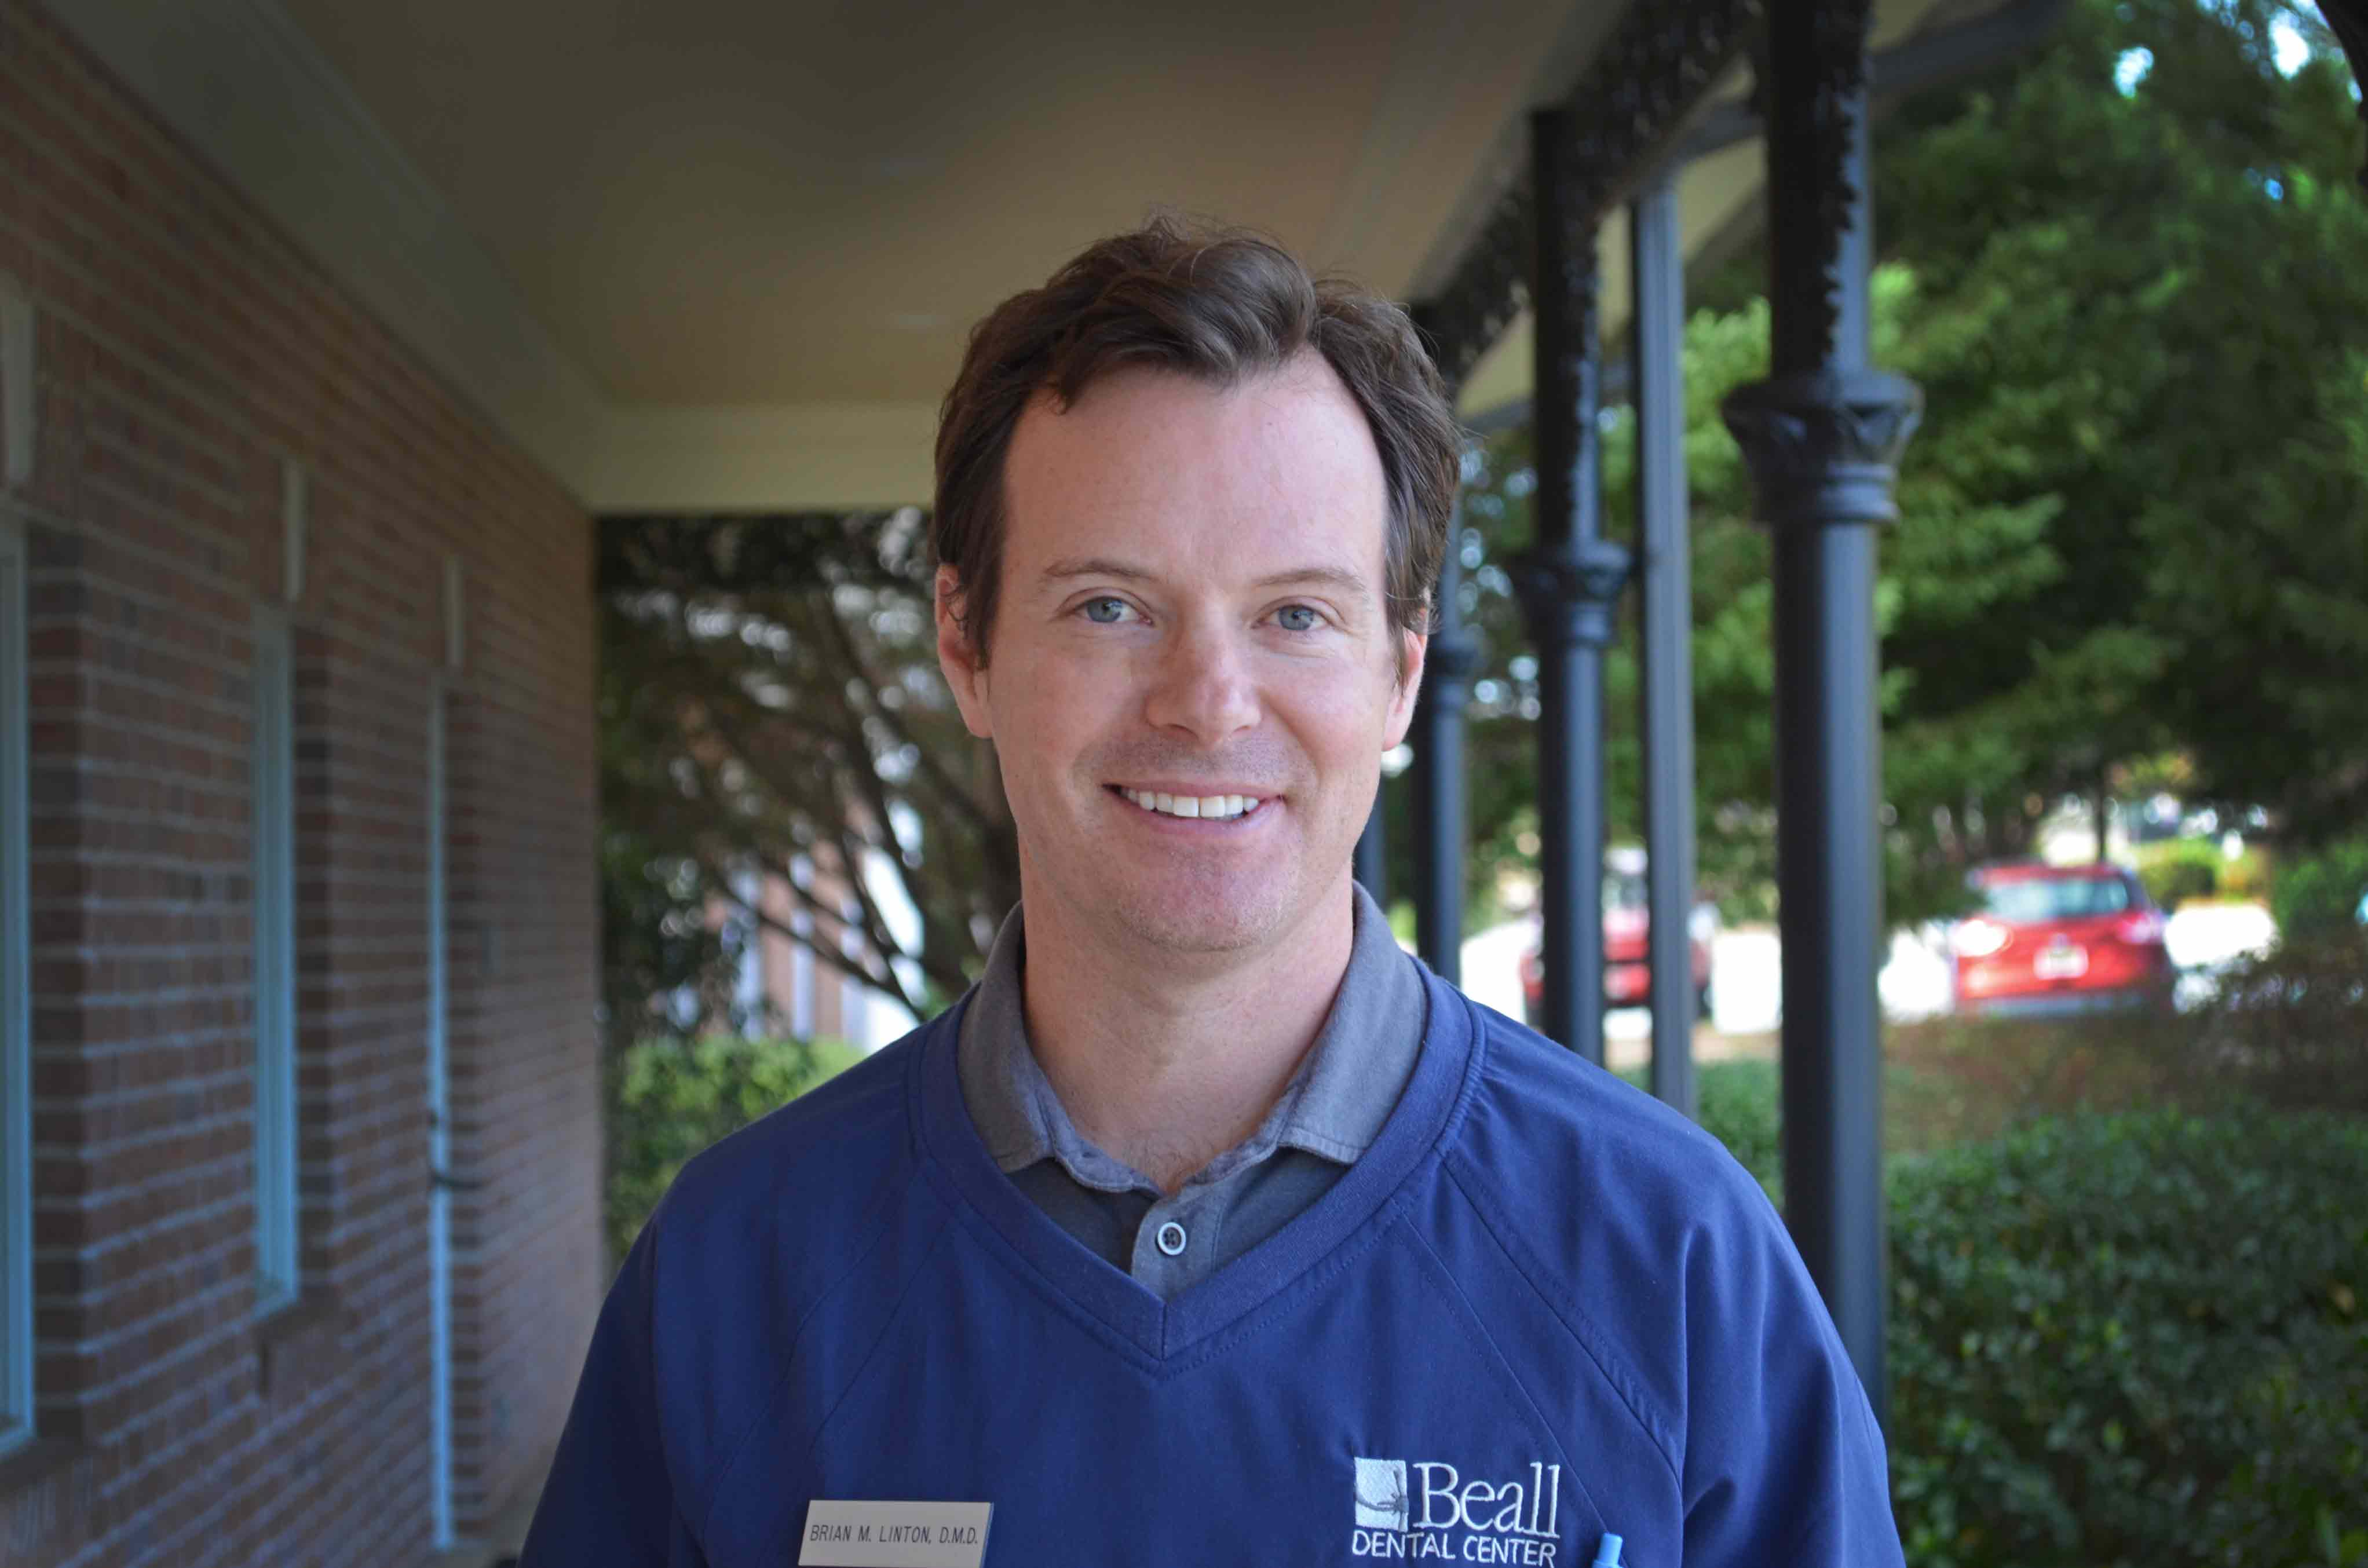 Brian-Linton-dental-implant-beall-dentist-lagrange-georgia